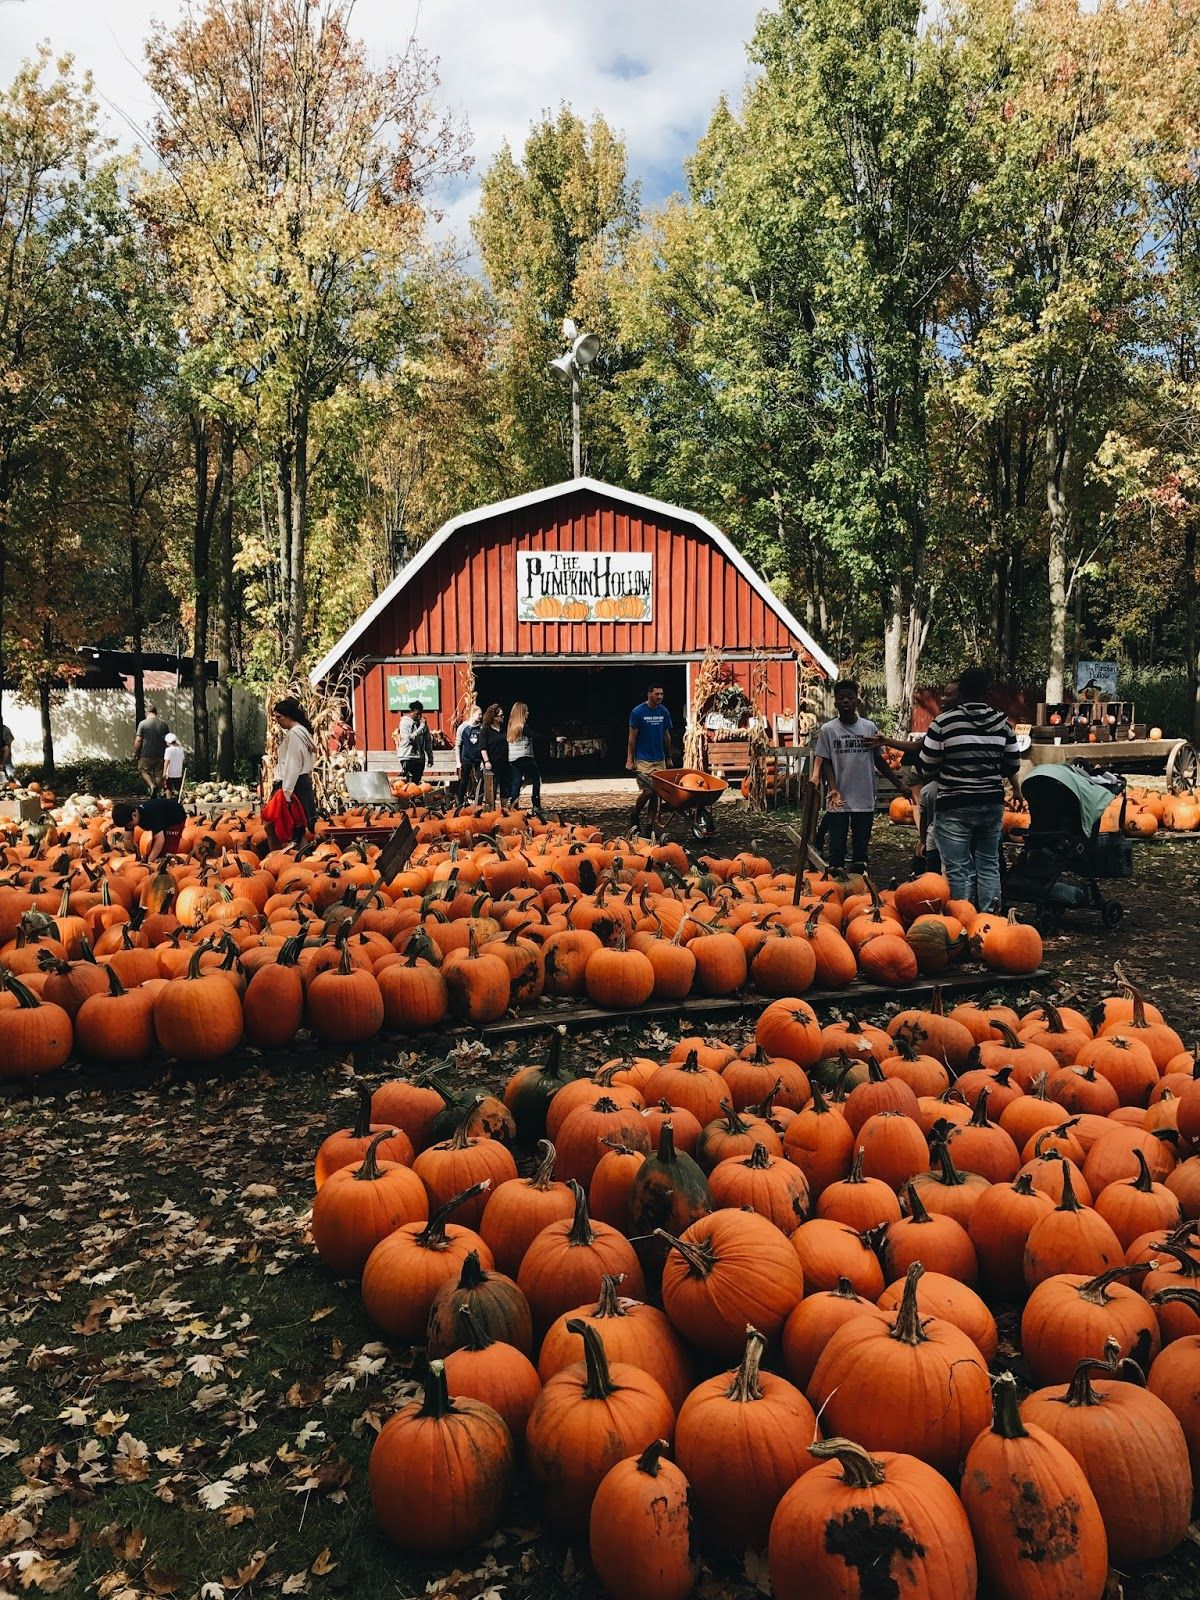 My Friend And I Found This Pumpkin Patch Nearby And Decided To Take A Trip There Today It Was So Much Fun And So Ador Autumn Aesthetic Pumpkin Pumpkin Picking